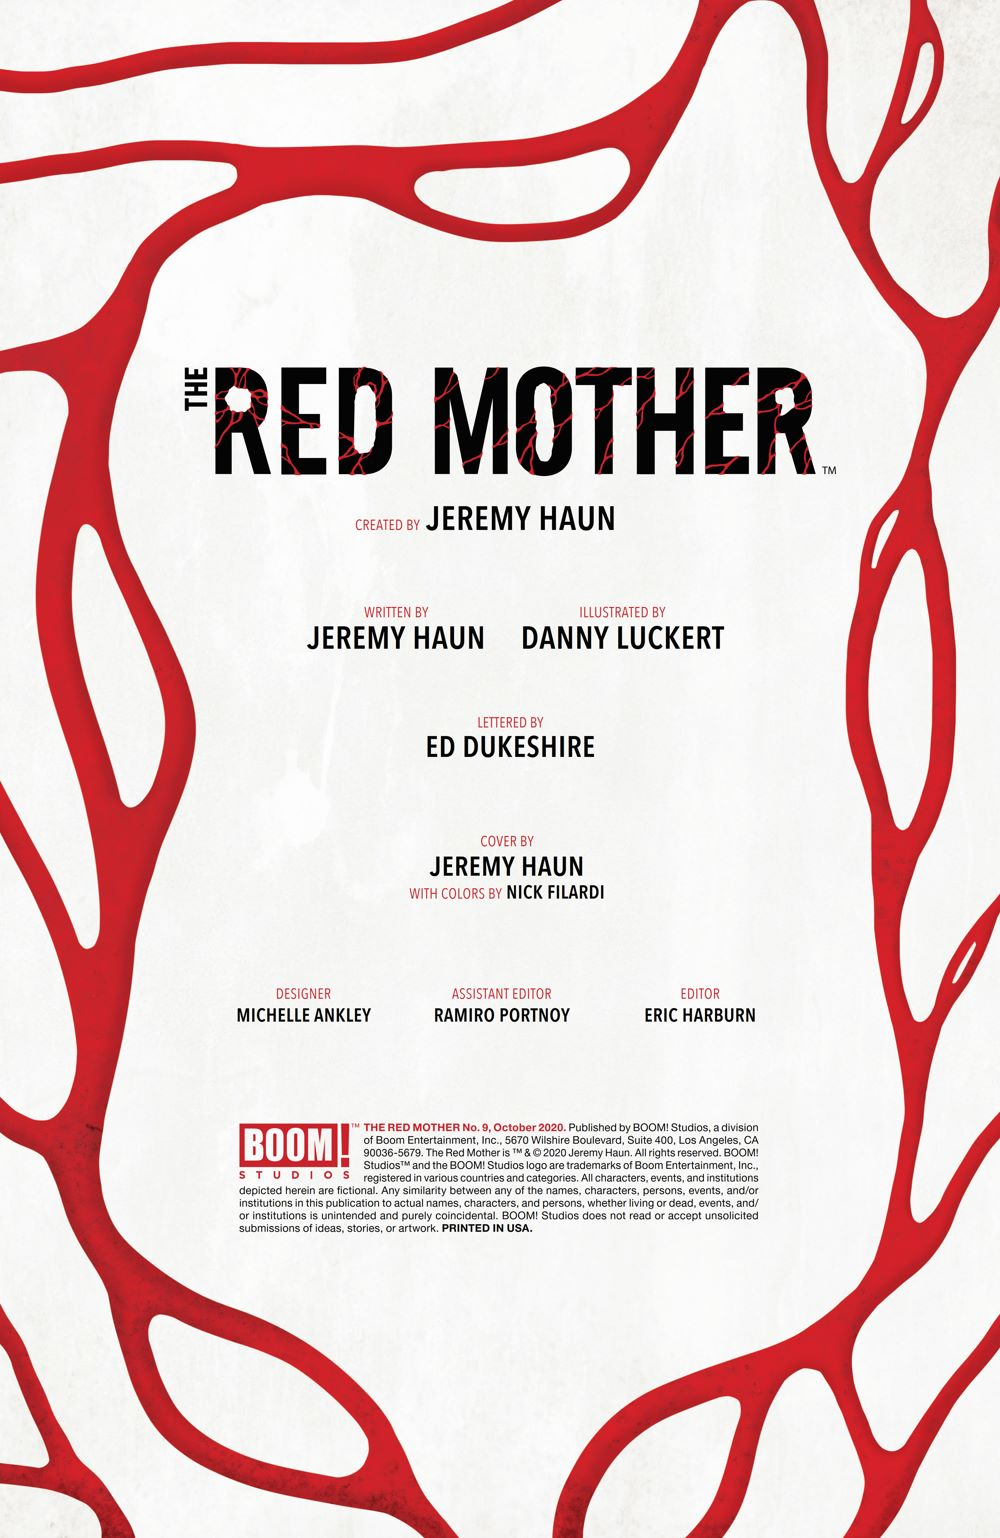 RedMother_009_PRESS_2 ComicList Previews: THE RED MOTHER #9